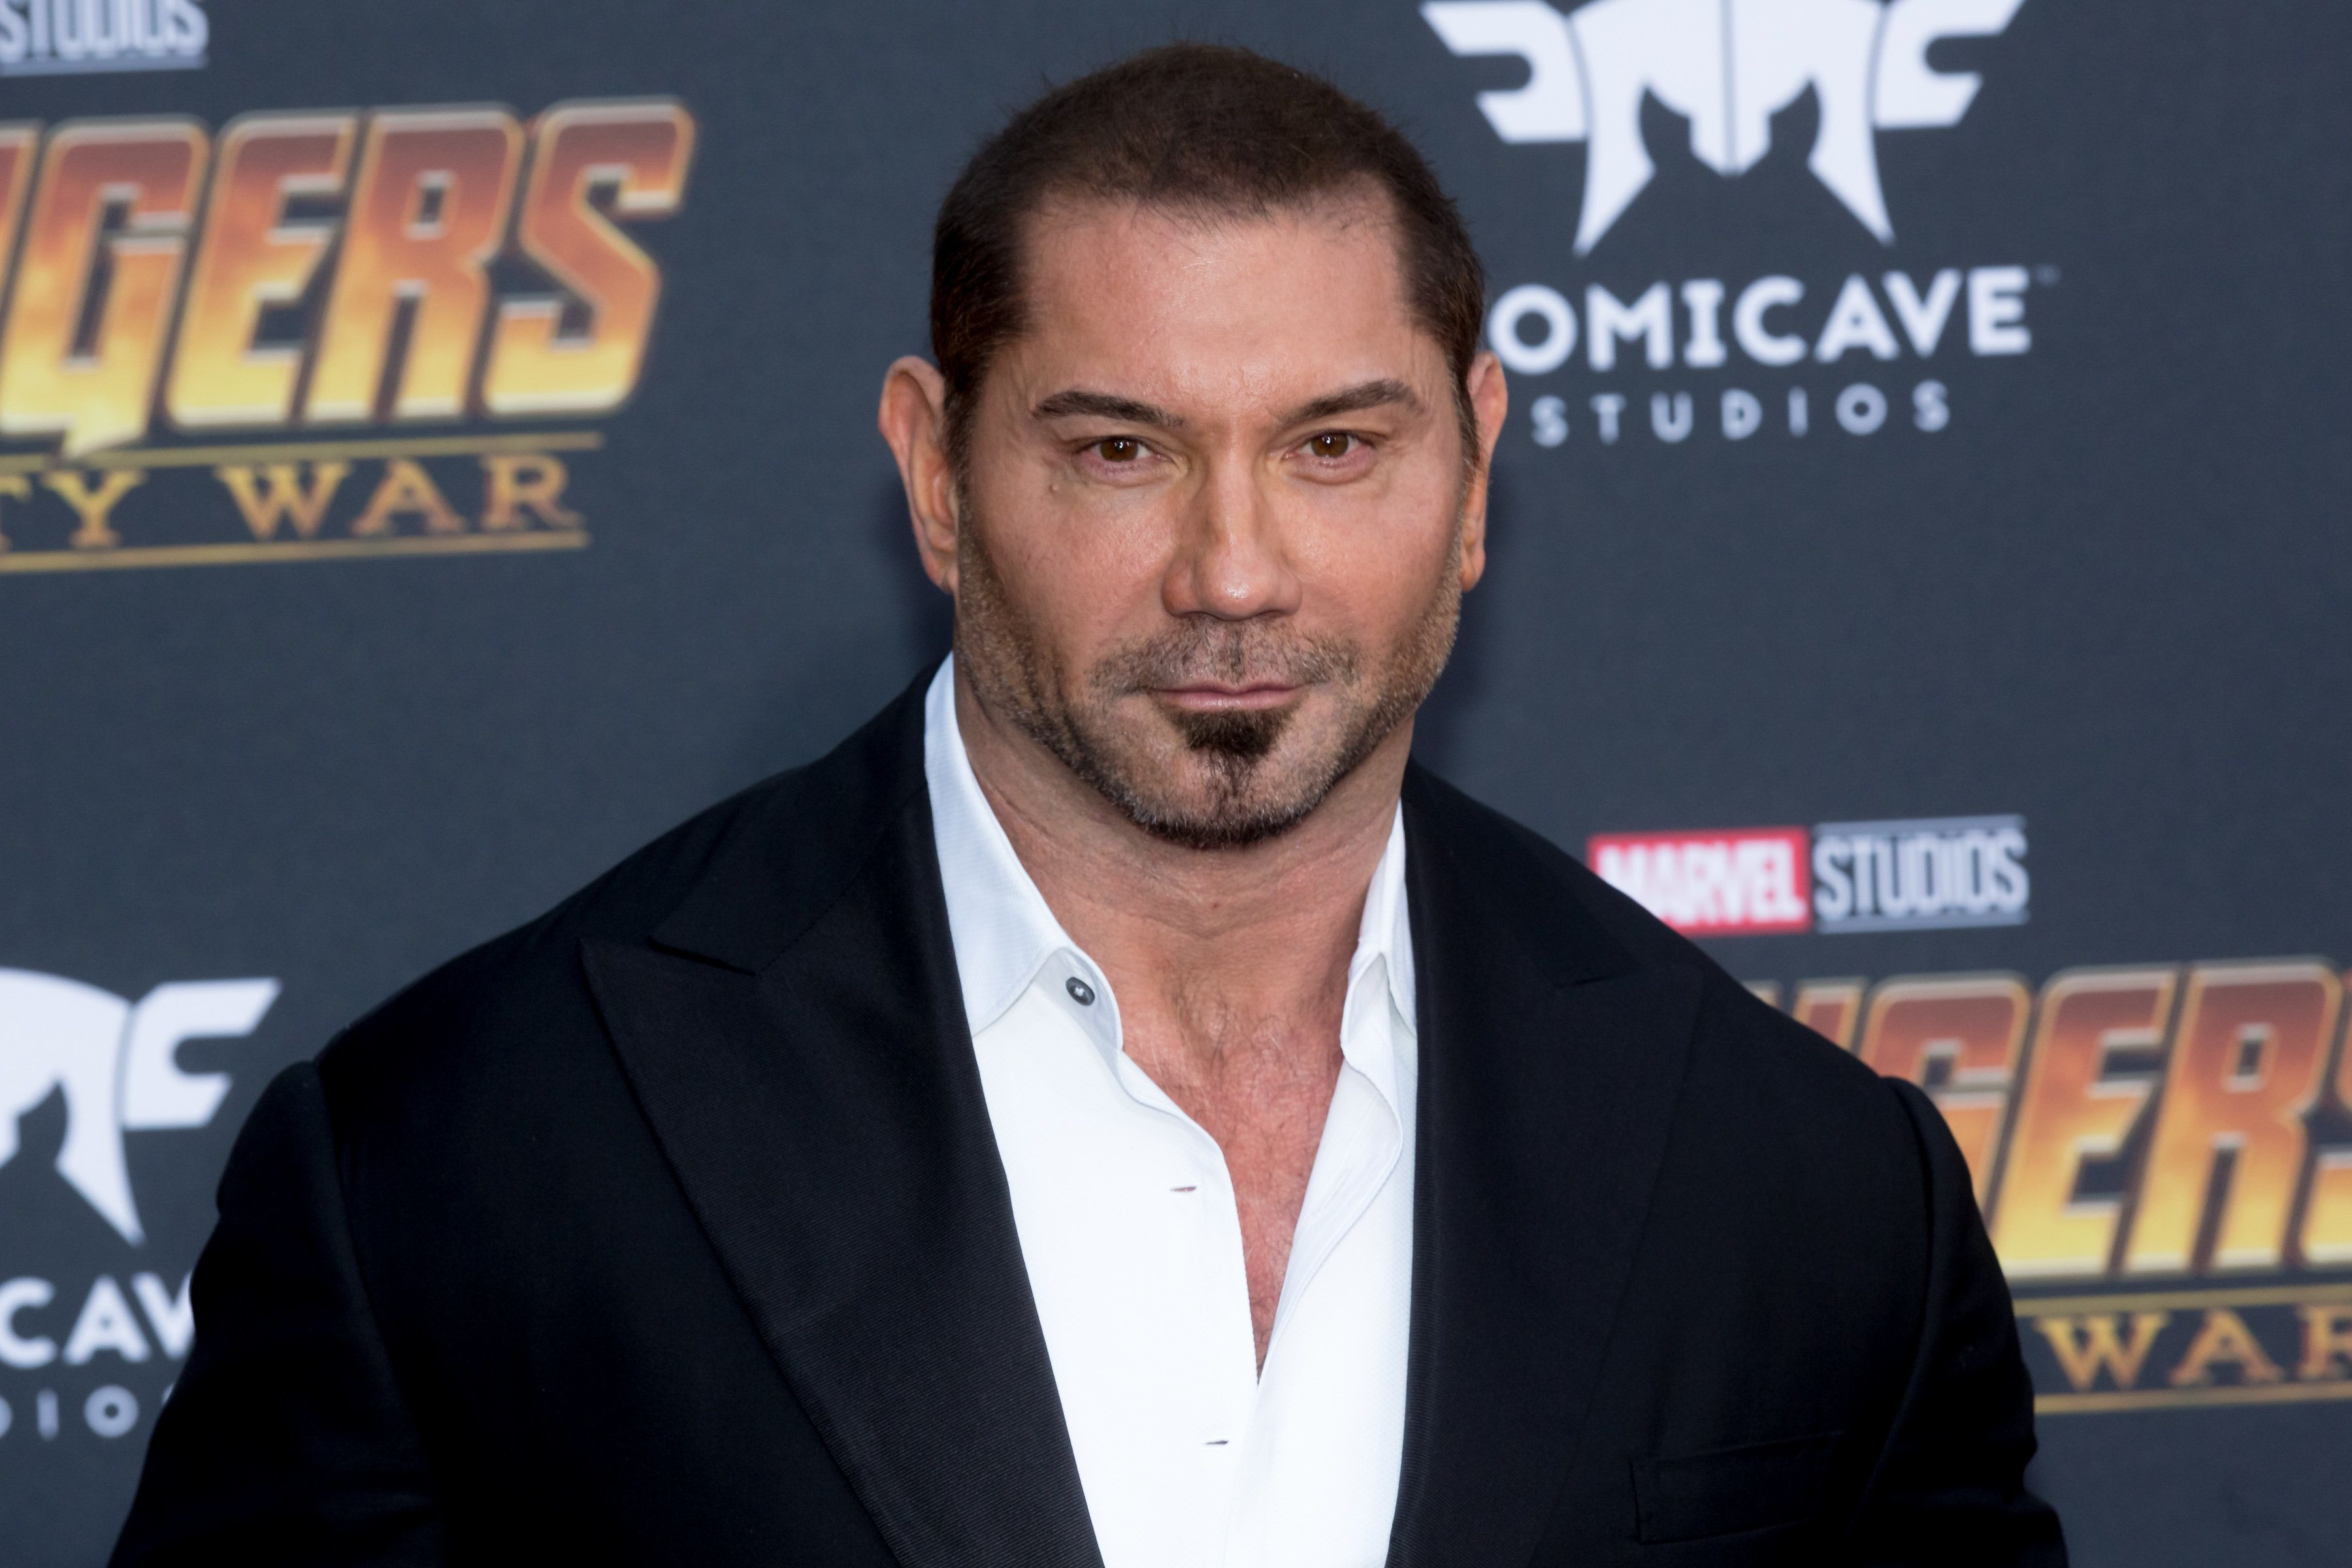 LOS ANGELES, CA - APRIL 23:  Dave Bautista attends the 'Avengers: Infinity War' World Premiere on April 23, 2018 in Los Angeles, California.  (Photo by Greg Doherty/Patrick McMullan via Getty Images)